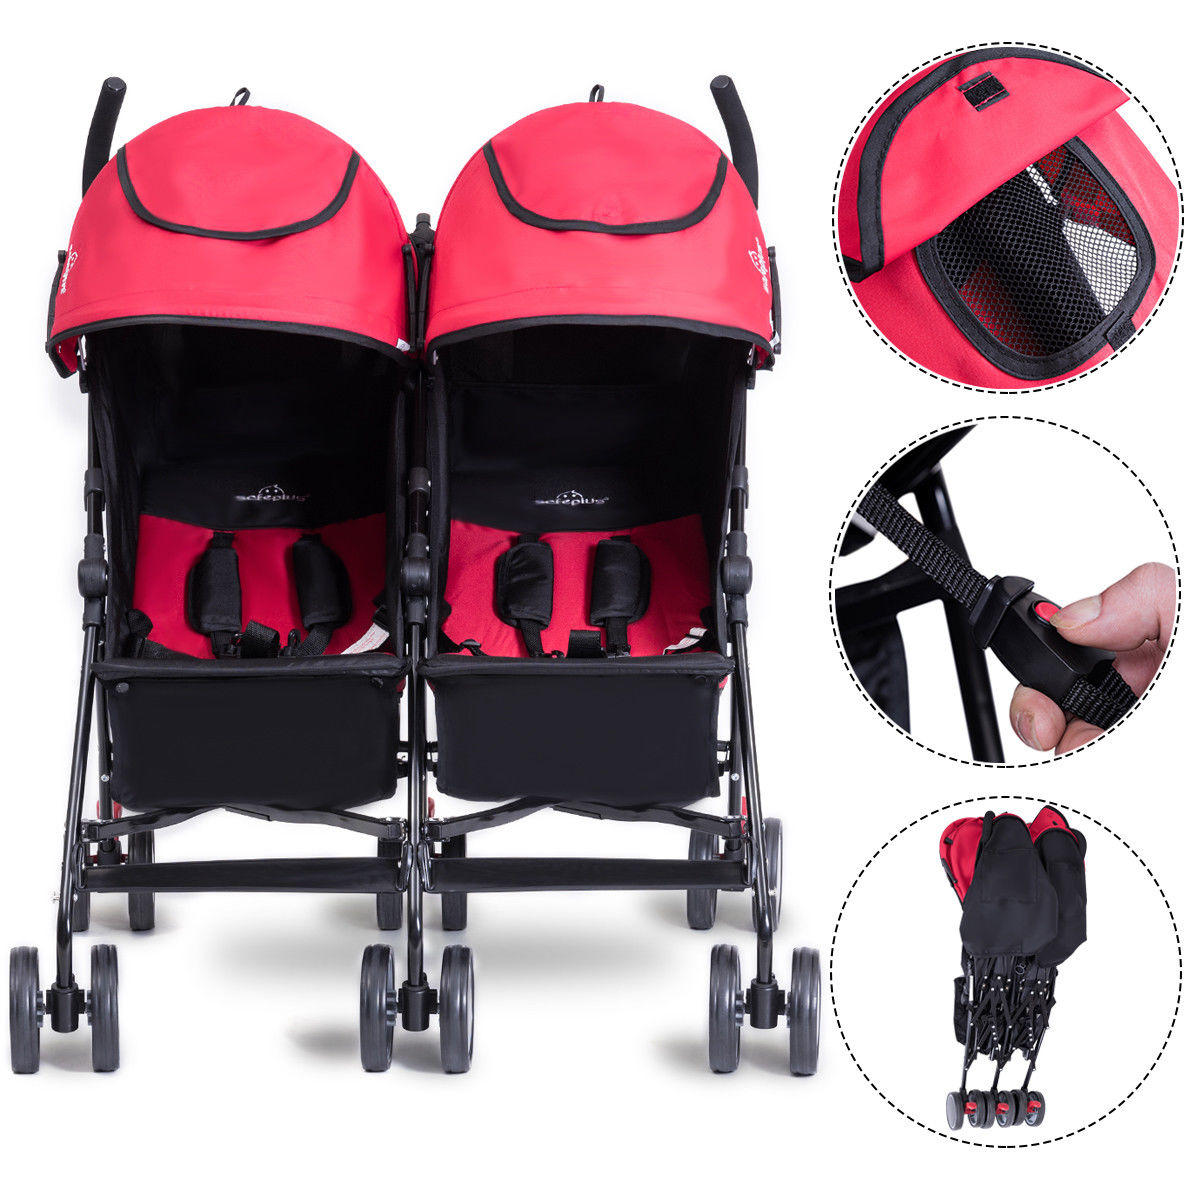 SafePlus Foldable Twin Baby Double Stroller Kids Jogger Travel Infant Pushchair Gray,Red